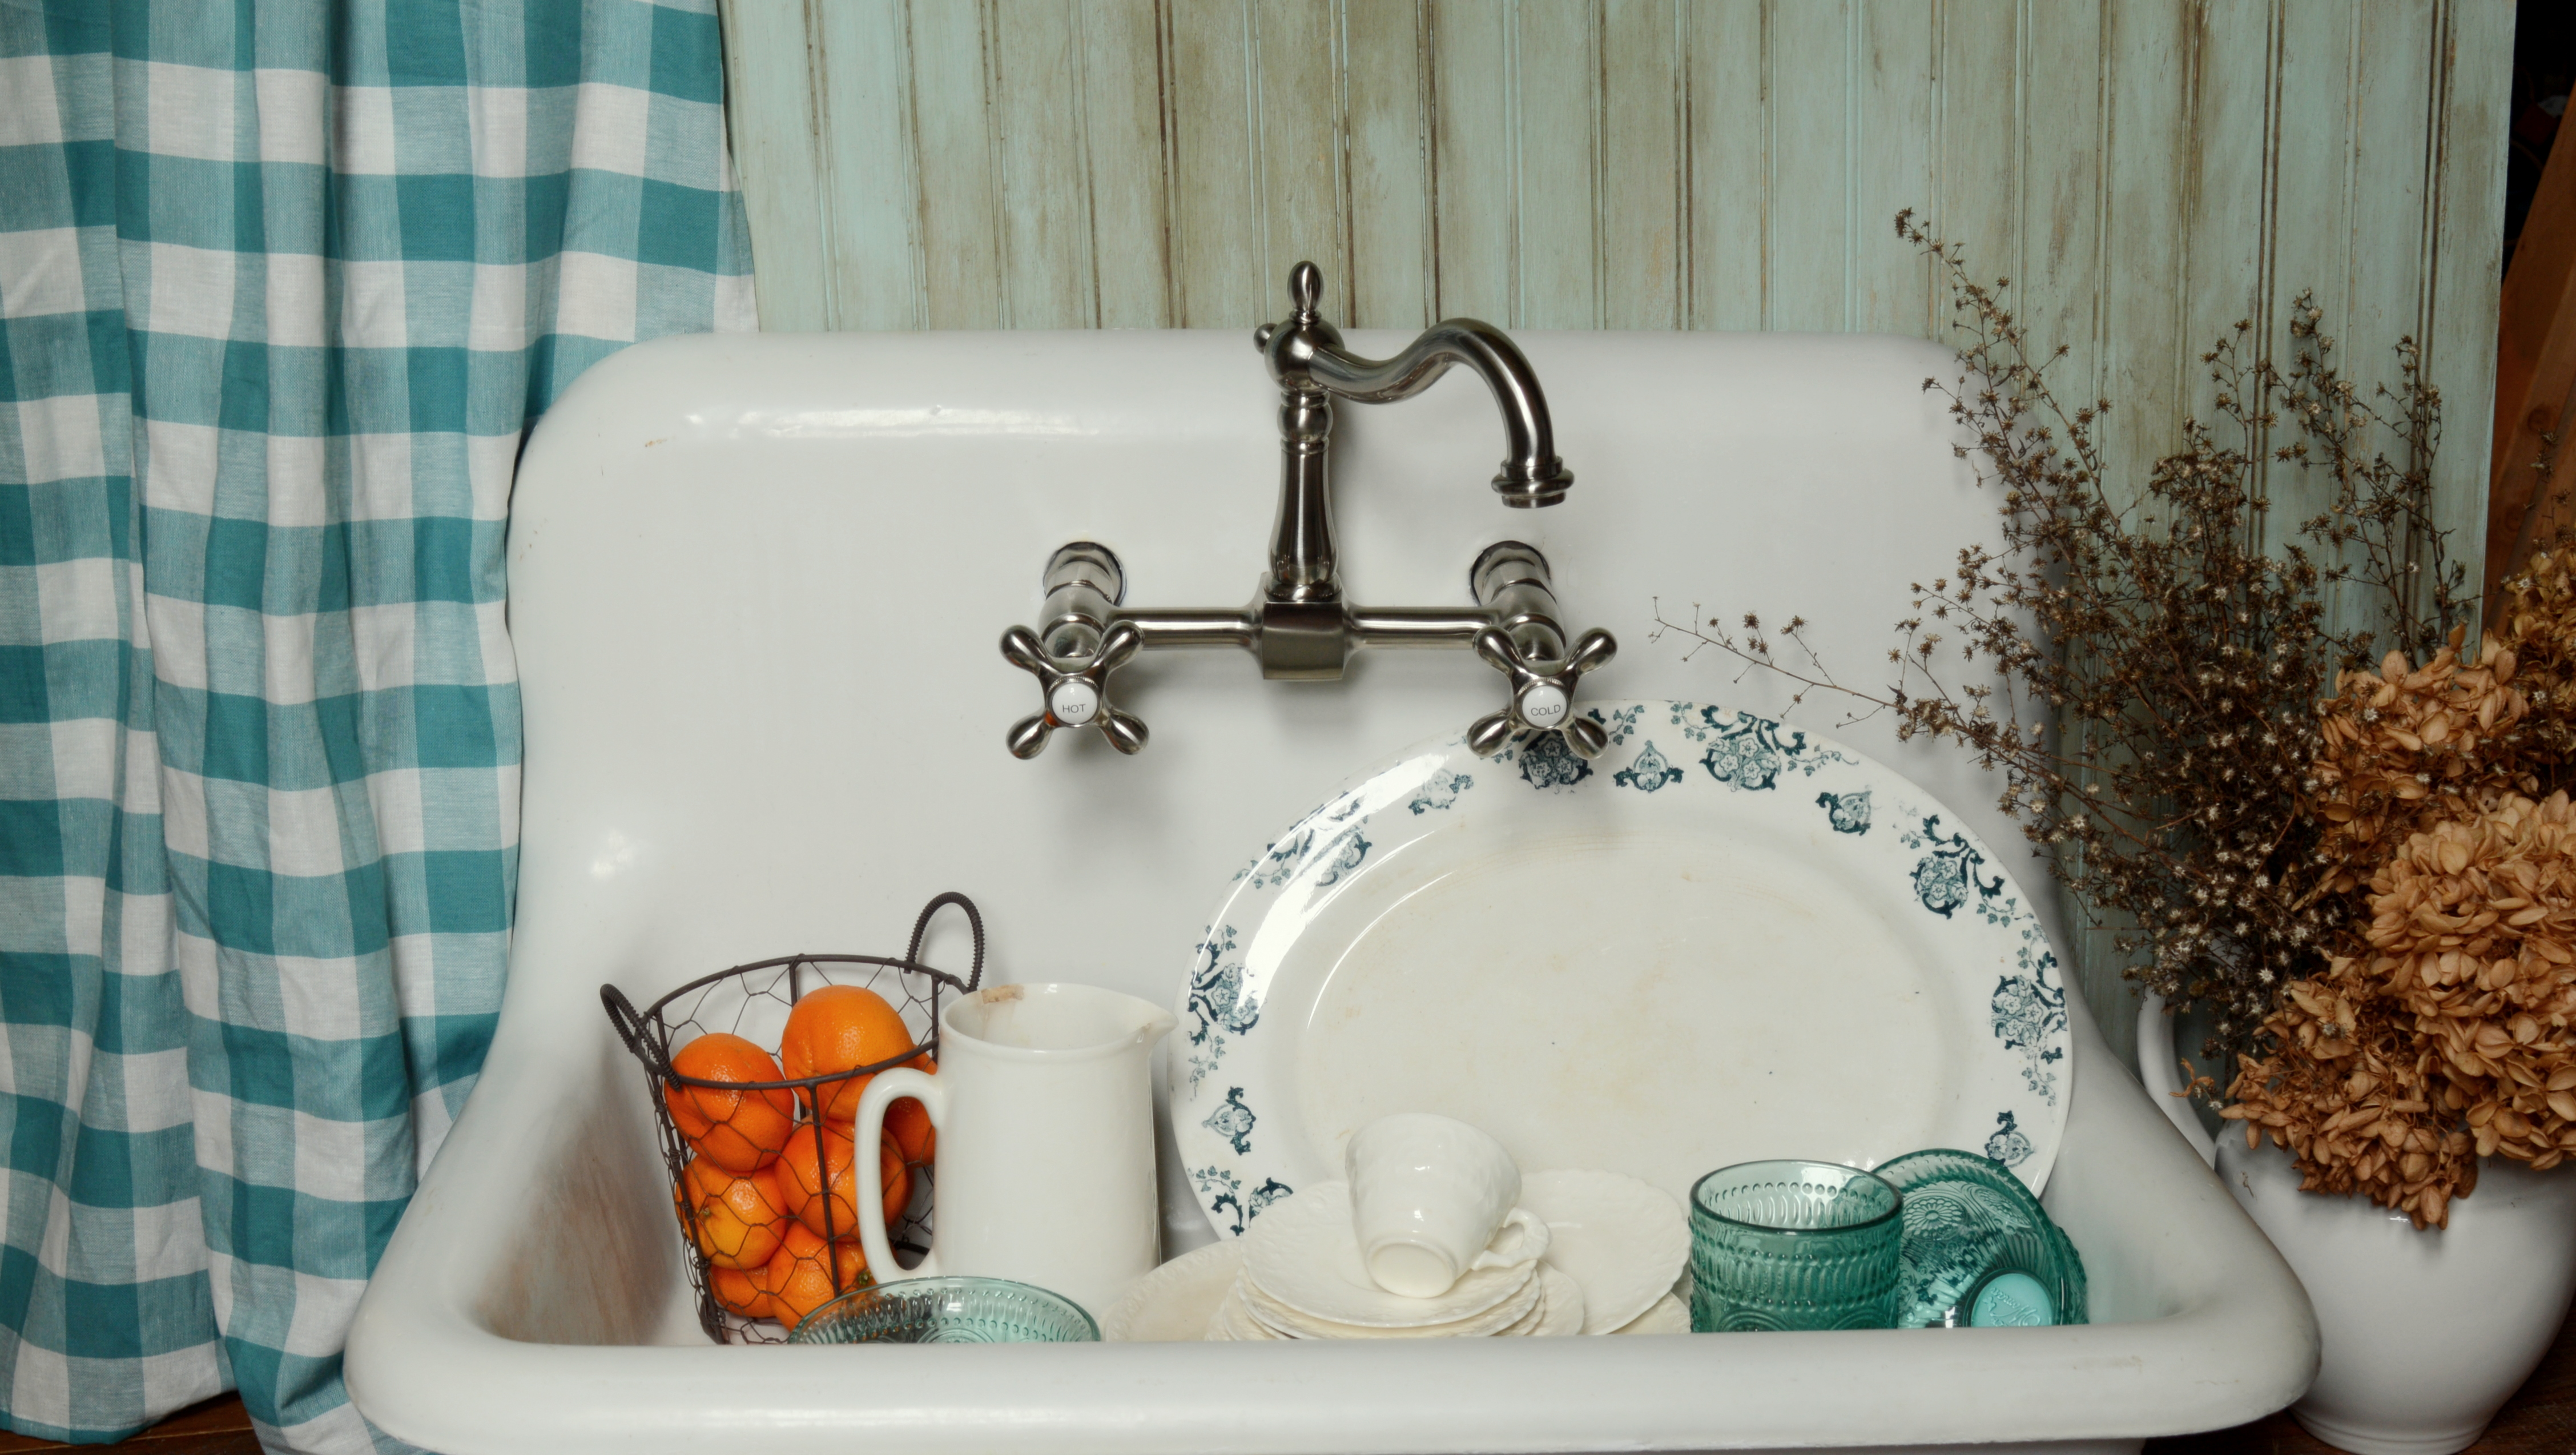 Antique Farm Sink Makeover {Tips For Restoring An Old Sink On A Budget}